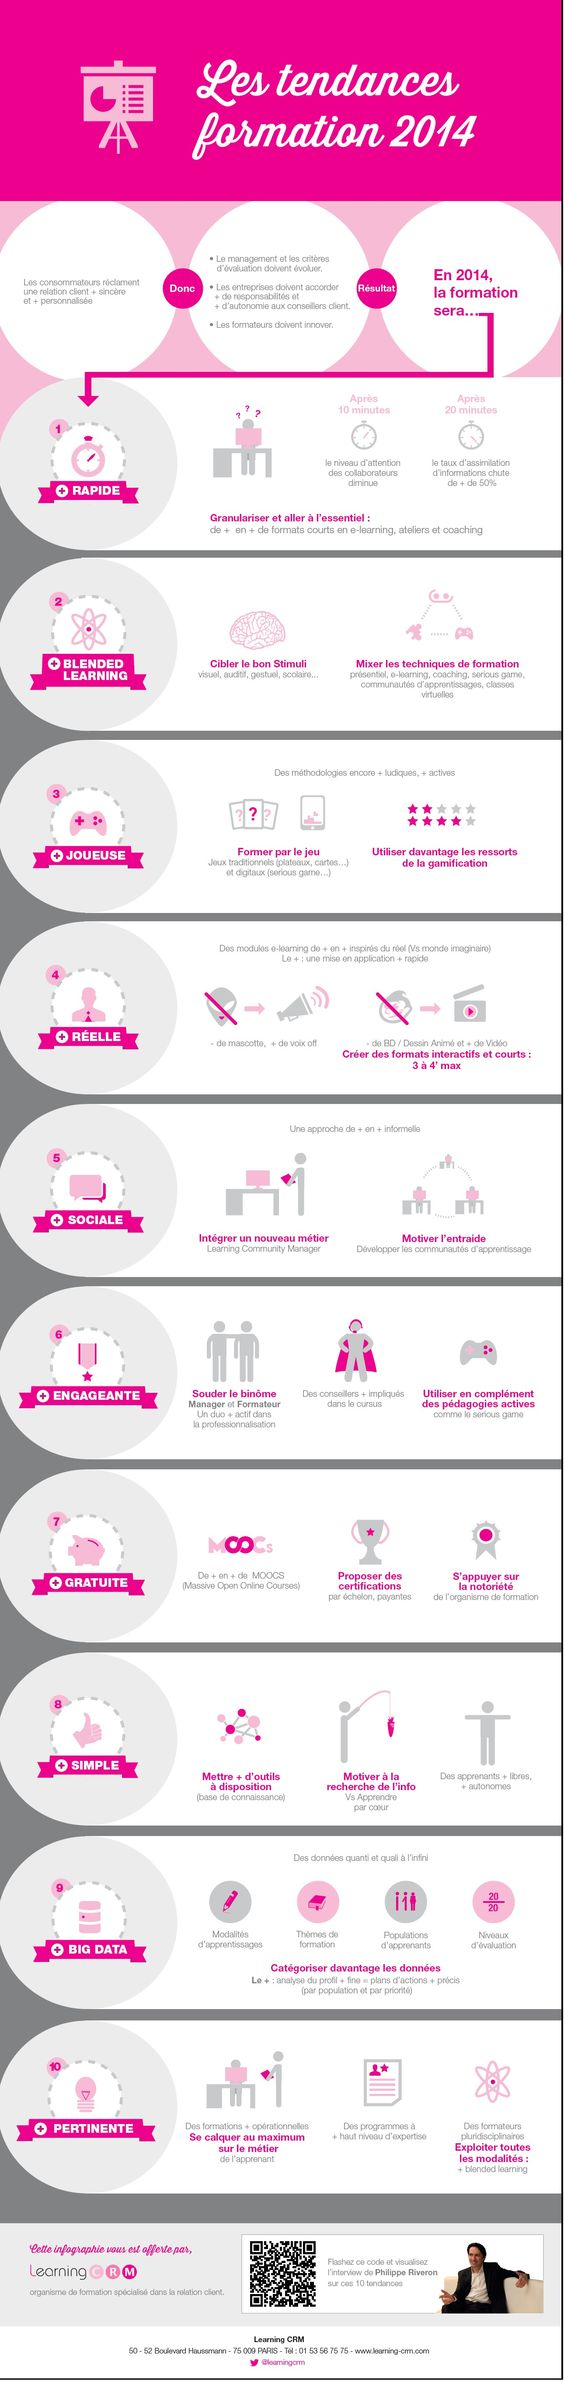 Les tendances de la formation : collection 2014 #infographic #formation #infographie